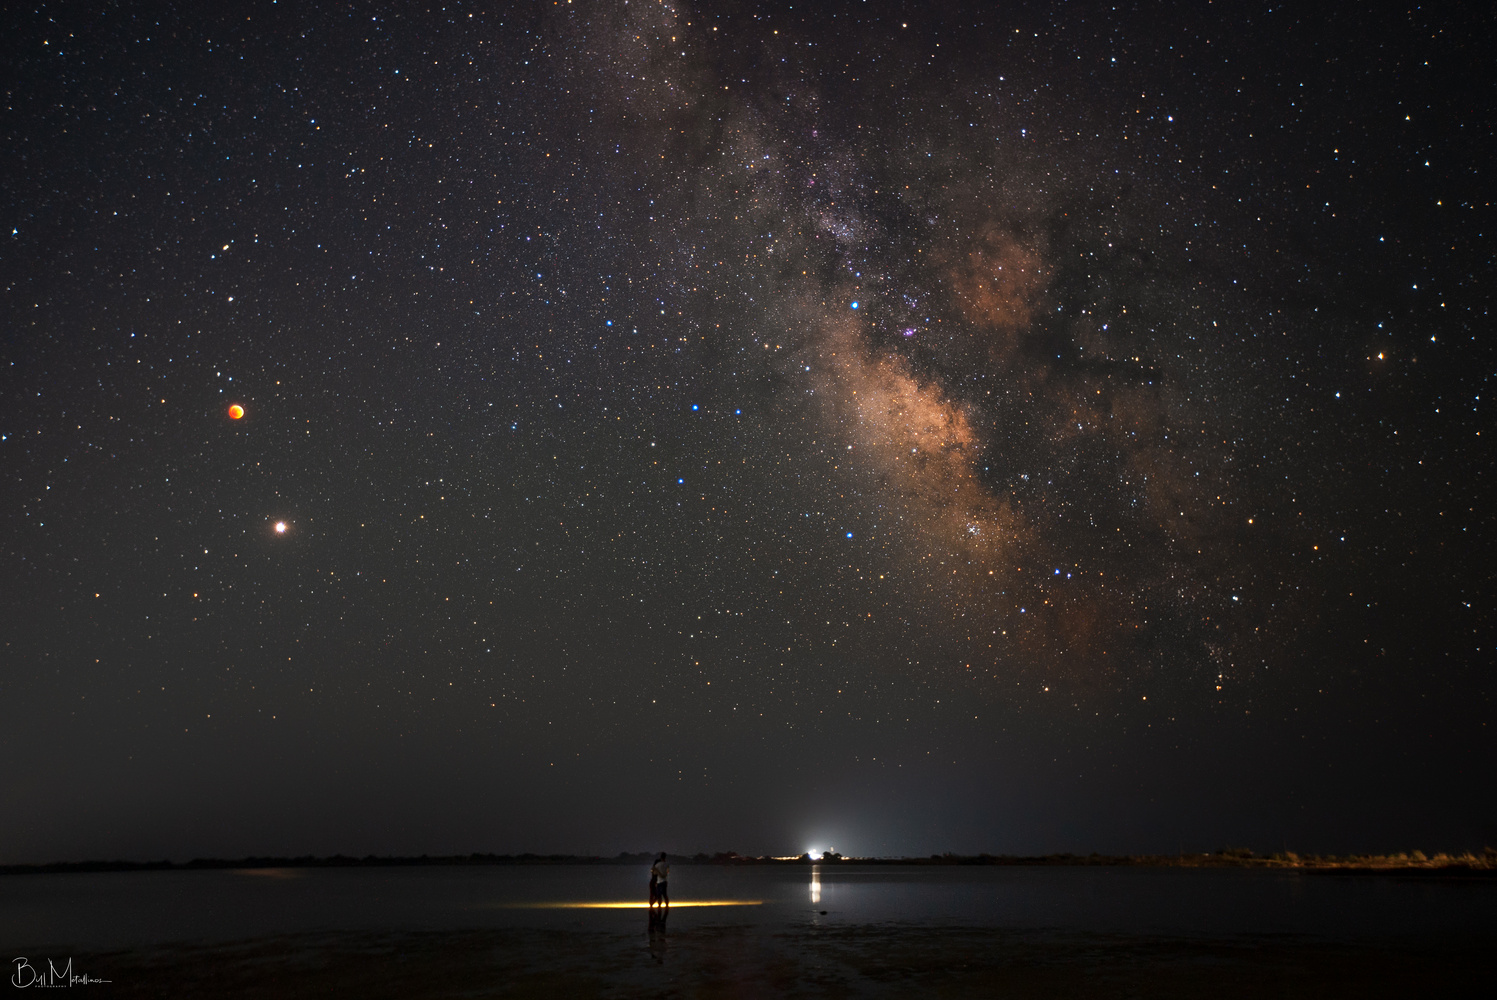 In love with Total Lunar Eclipse, Milkyway and Mars Conjunction by Bill Metallinos